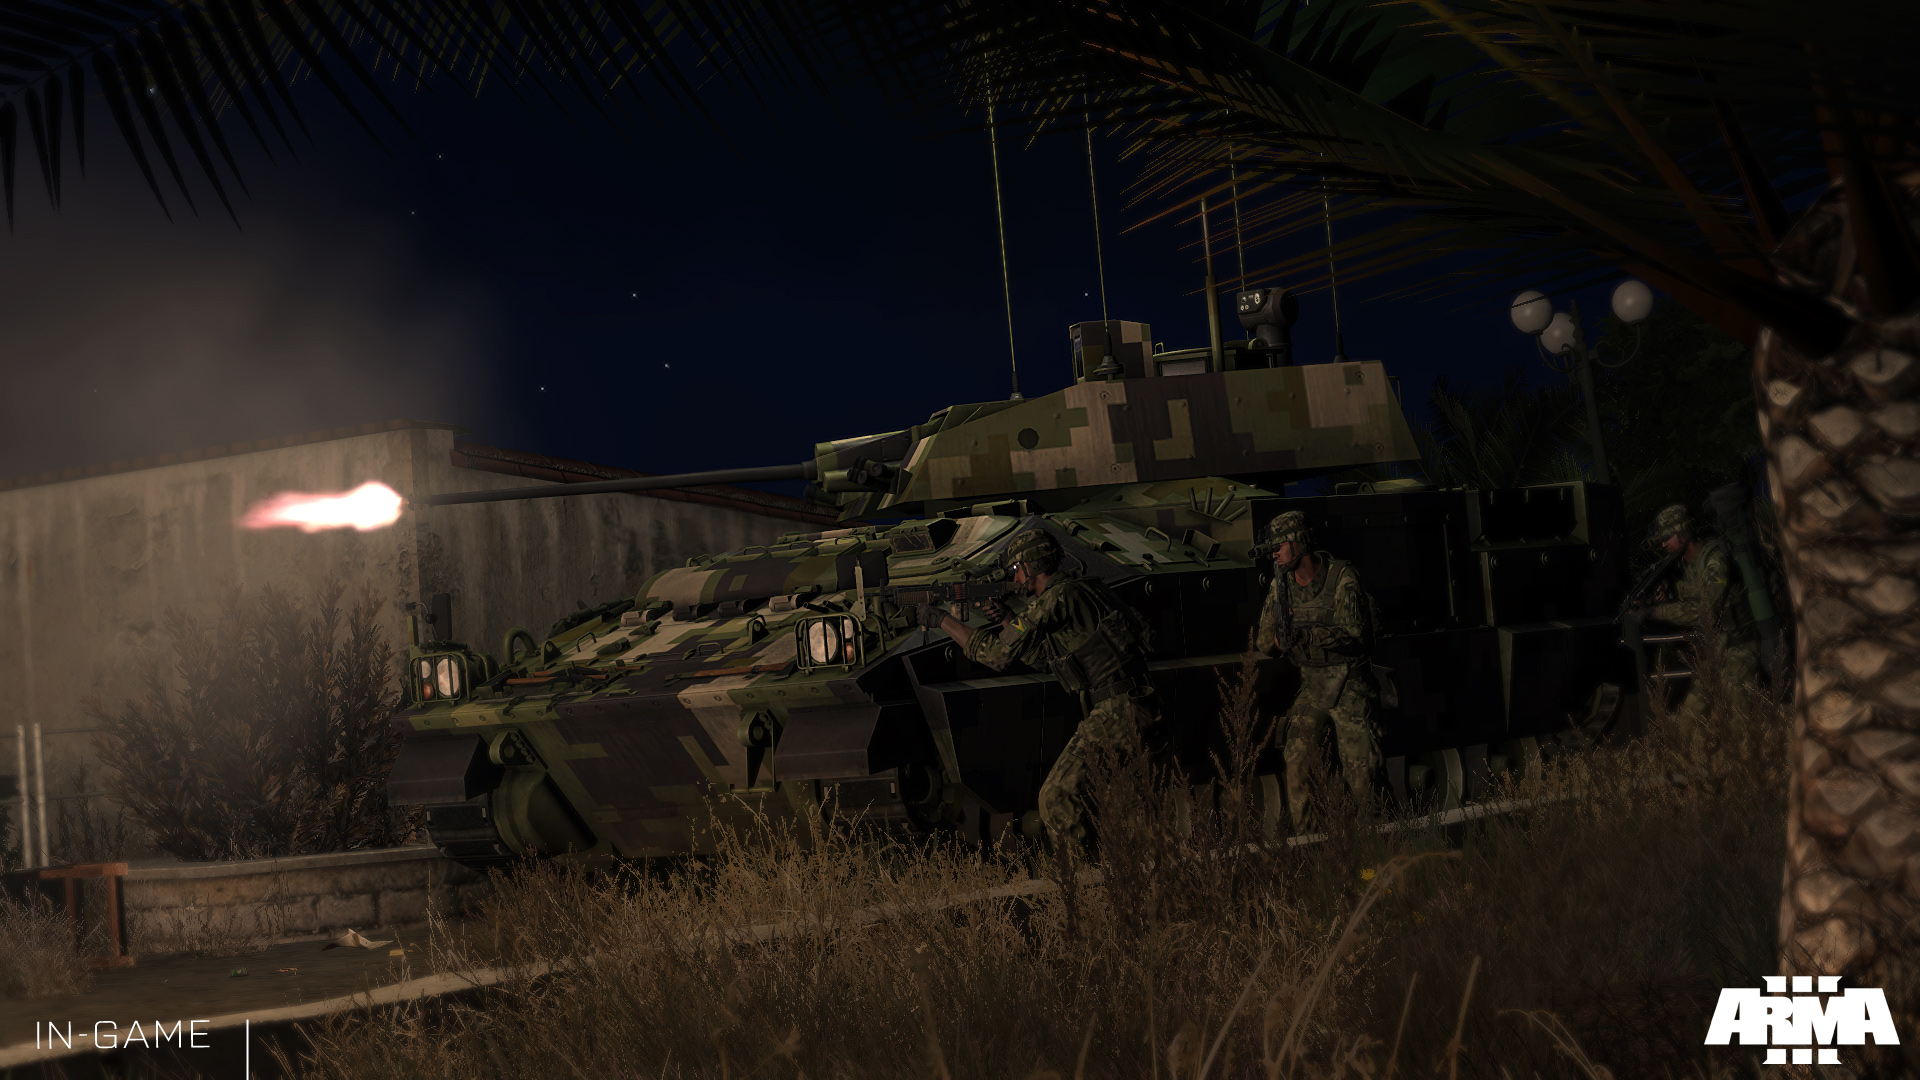 arma3_screenshot03_FV720Mora.jpg